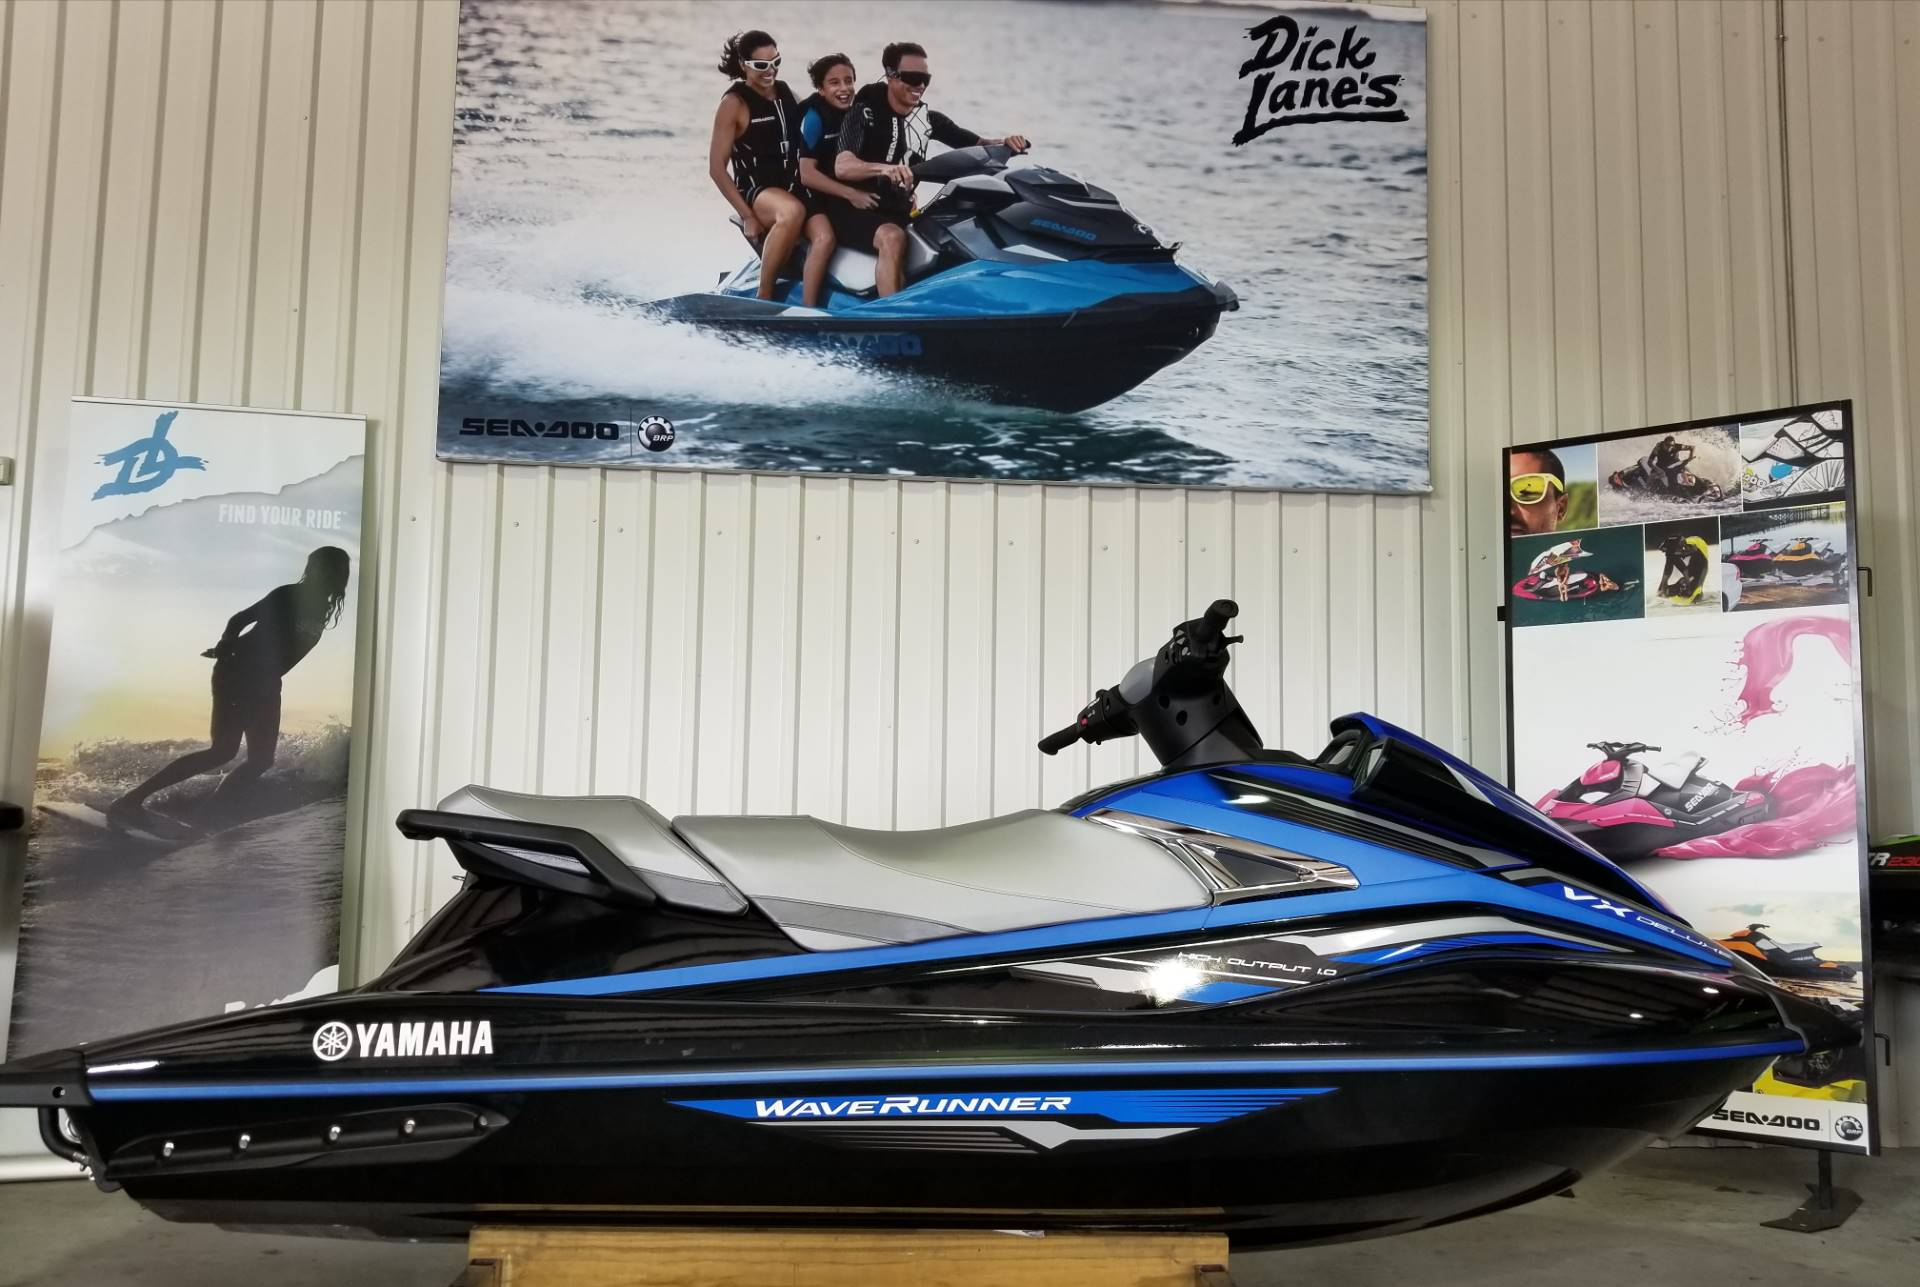 2018 Yamaha VX Deluxe for sale 34358